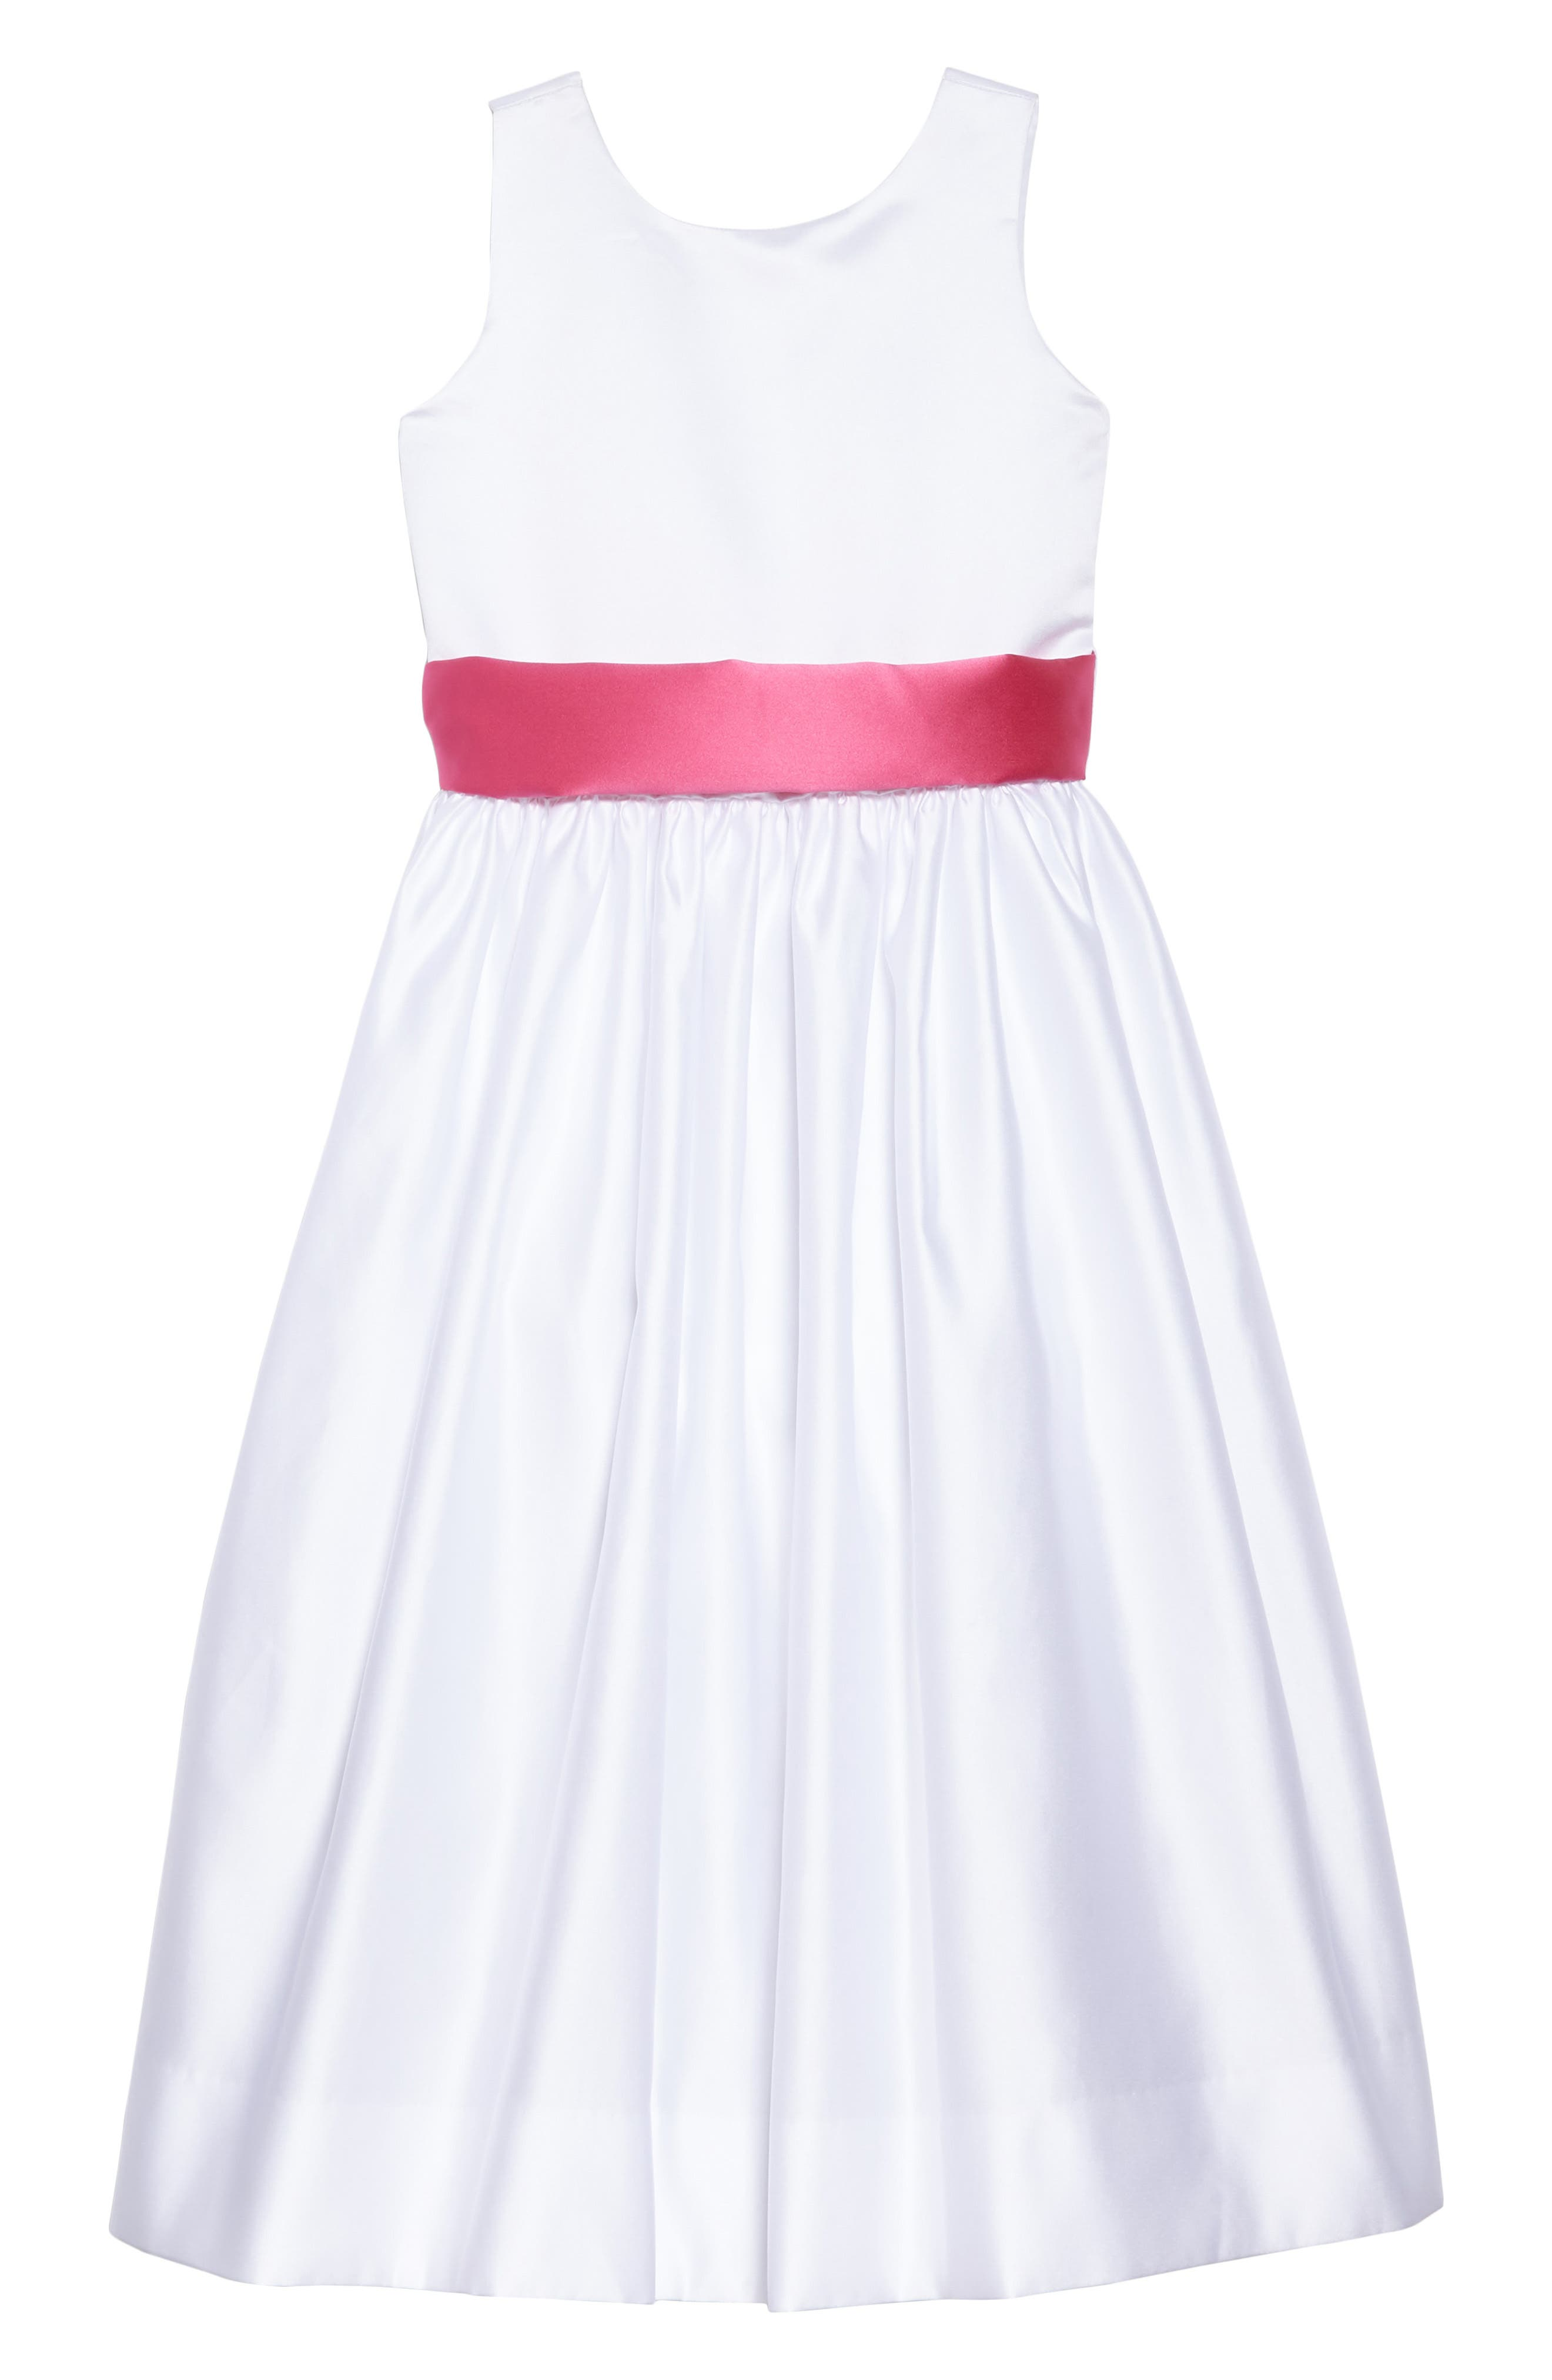 White Tank Dress with Satin Sash,                             Main thumbnail 1, color,                             WHITE/ FUCHSIA